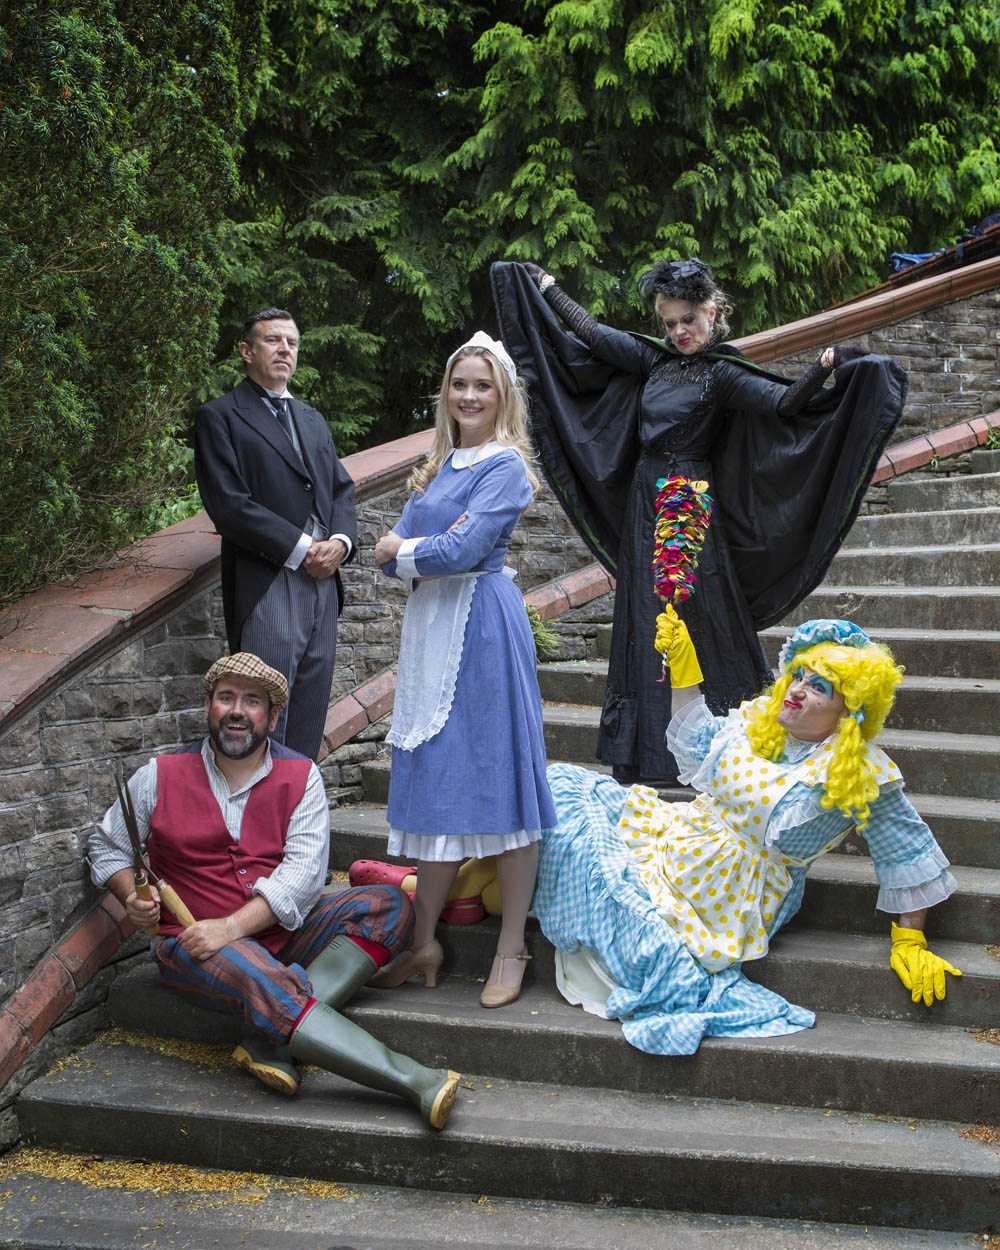 The cast of Newport Riverfront's 2018 pantomime, Sleeping Beauty at Newport's Belle Vue Park. Sleeping Beauty  runs from Tuesday 4 December 2018 to Sunday 6 January 2019